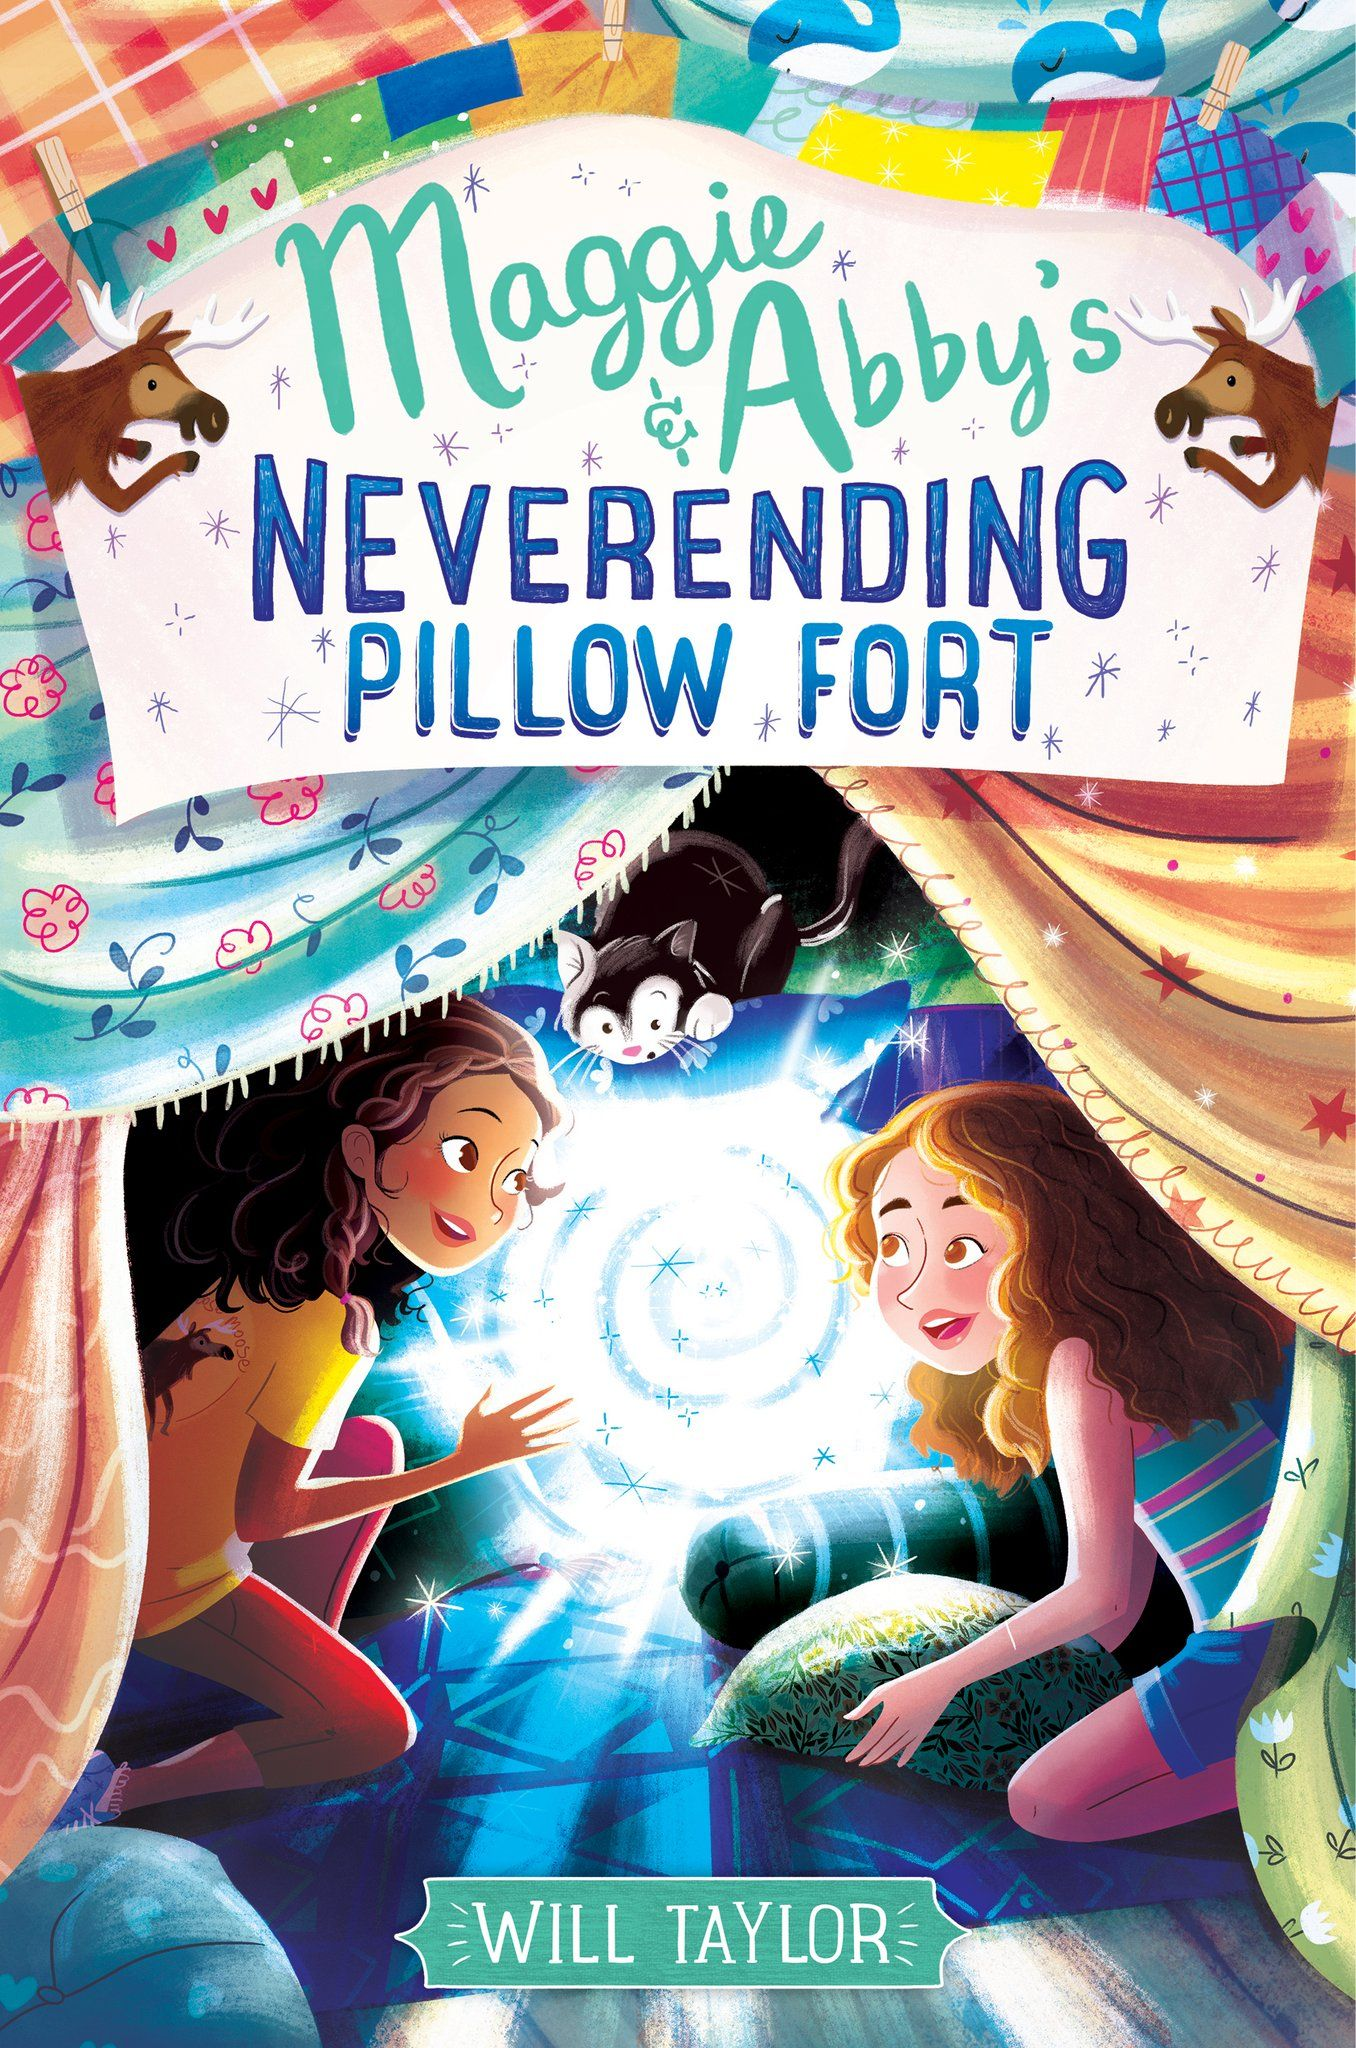 6 twitter books for tweens mighty girl books pillow fort